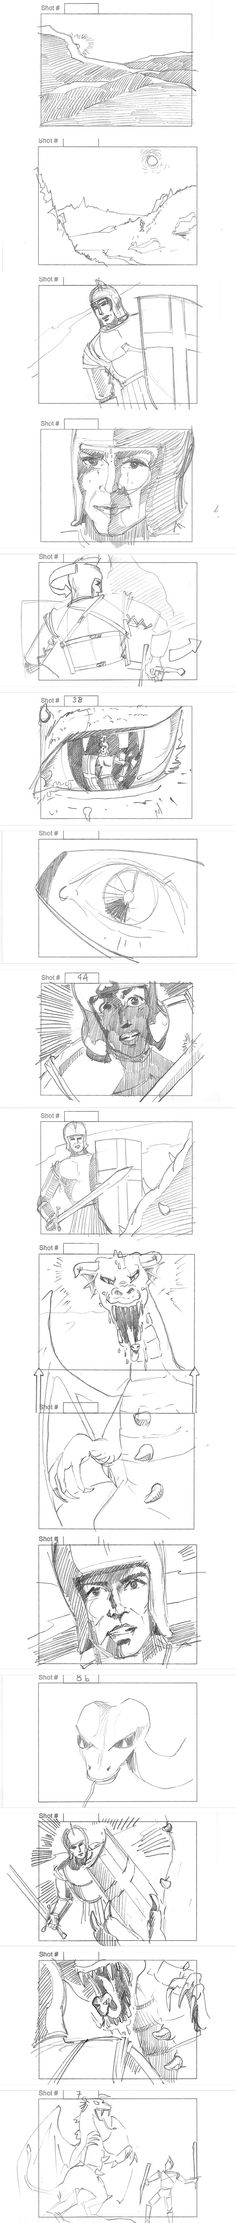 Storyboards By Storyboard Artist Cuong Huynh Got A Script ILl